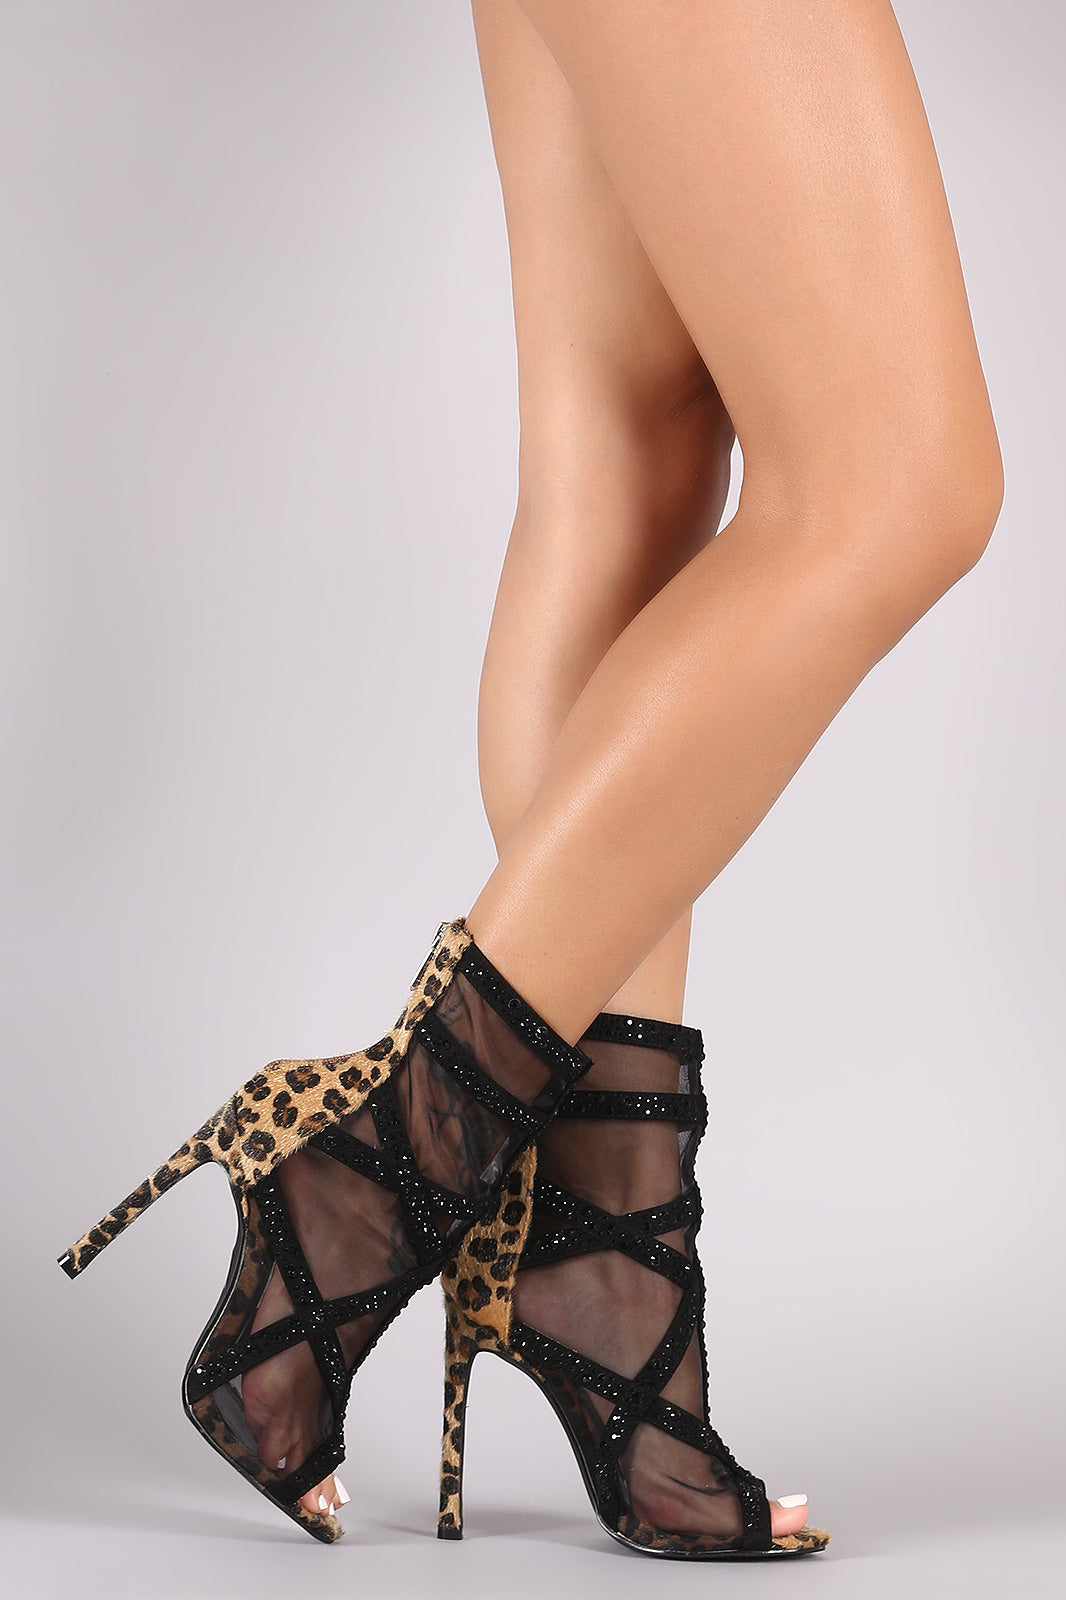 Mesh Booties For Women By Mesh/Vegan Suede | Women Leopard Mesh Rhinestone Embellished Stiletto Booties A Glamorous Booties Sheer Mesh Upper Vegan Suede Trimming Leopard Detail Heel